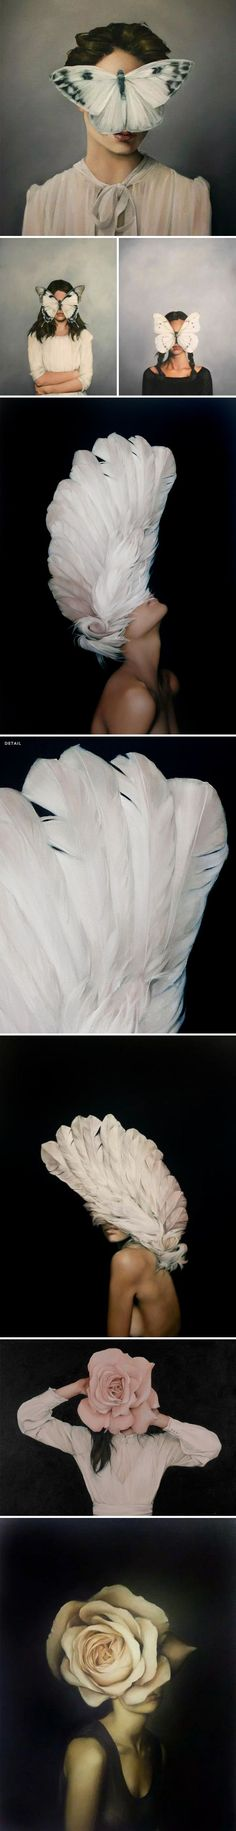 OIL PAINTINGS BY AMYJUDD